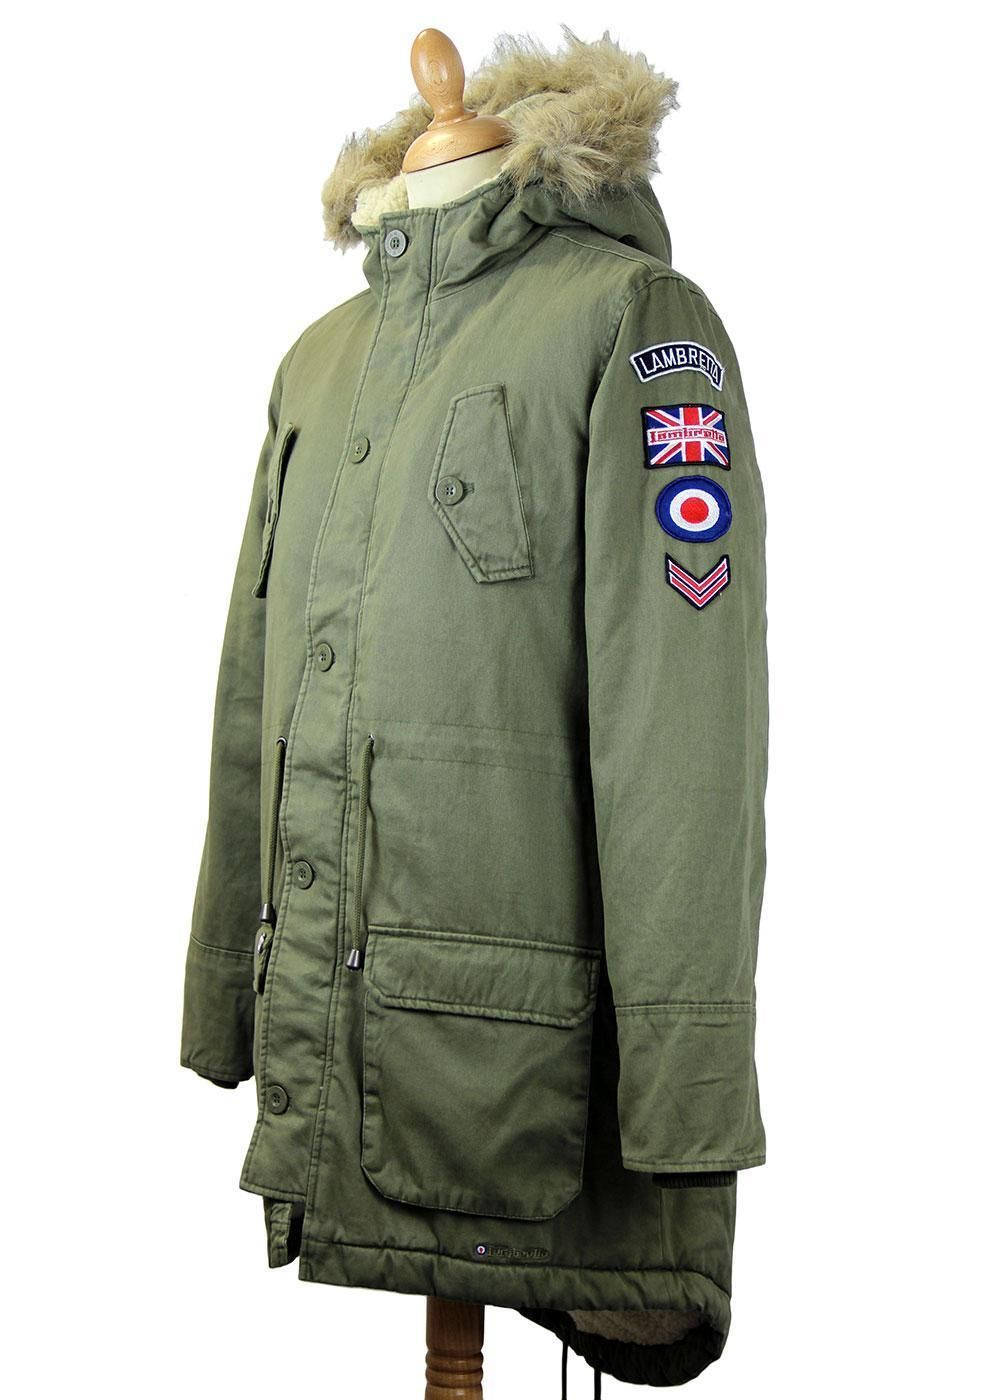 6560c3308 Lambretta Mens Retro Fishtail Parka Coat Jacket Khaki Green Vintage ...